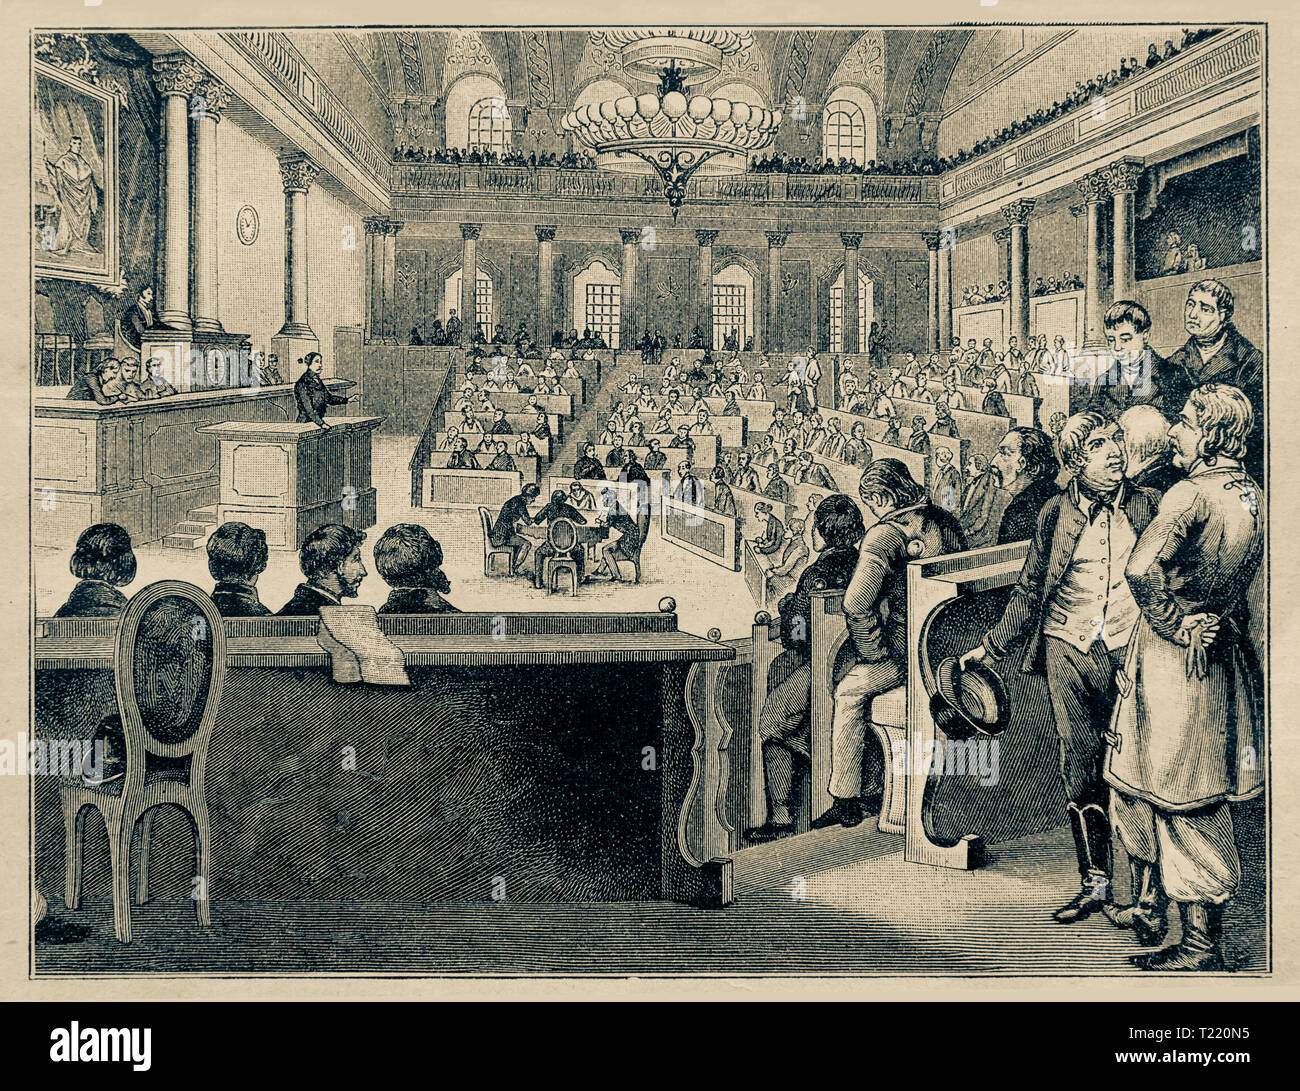 Meeting of the first Austrian Reichstag in Vienna / July 1848. Digital improved reproduction from Illustrated overview of the life of mankind in the 19th century, 1901 edition, Marx publishing house, St. Petersburg. Stock Photo